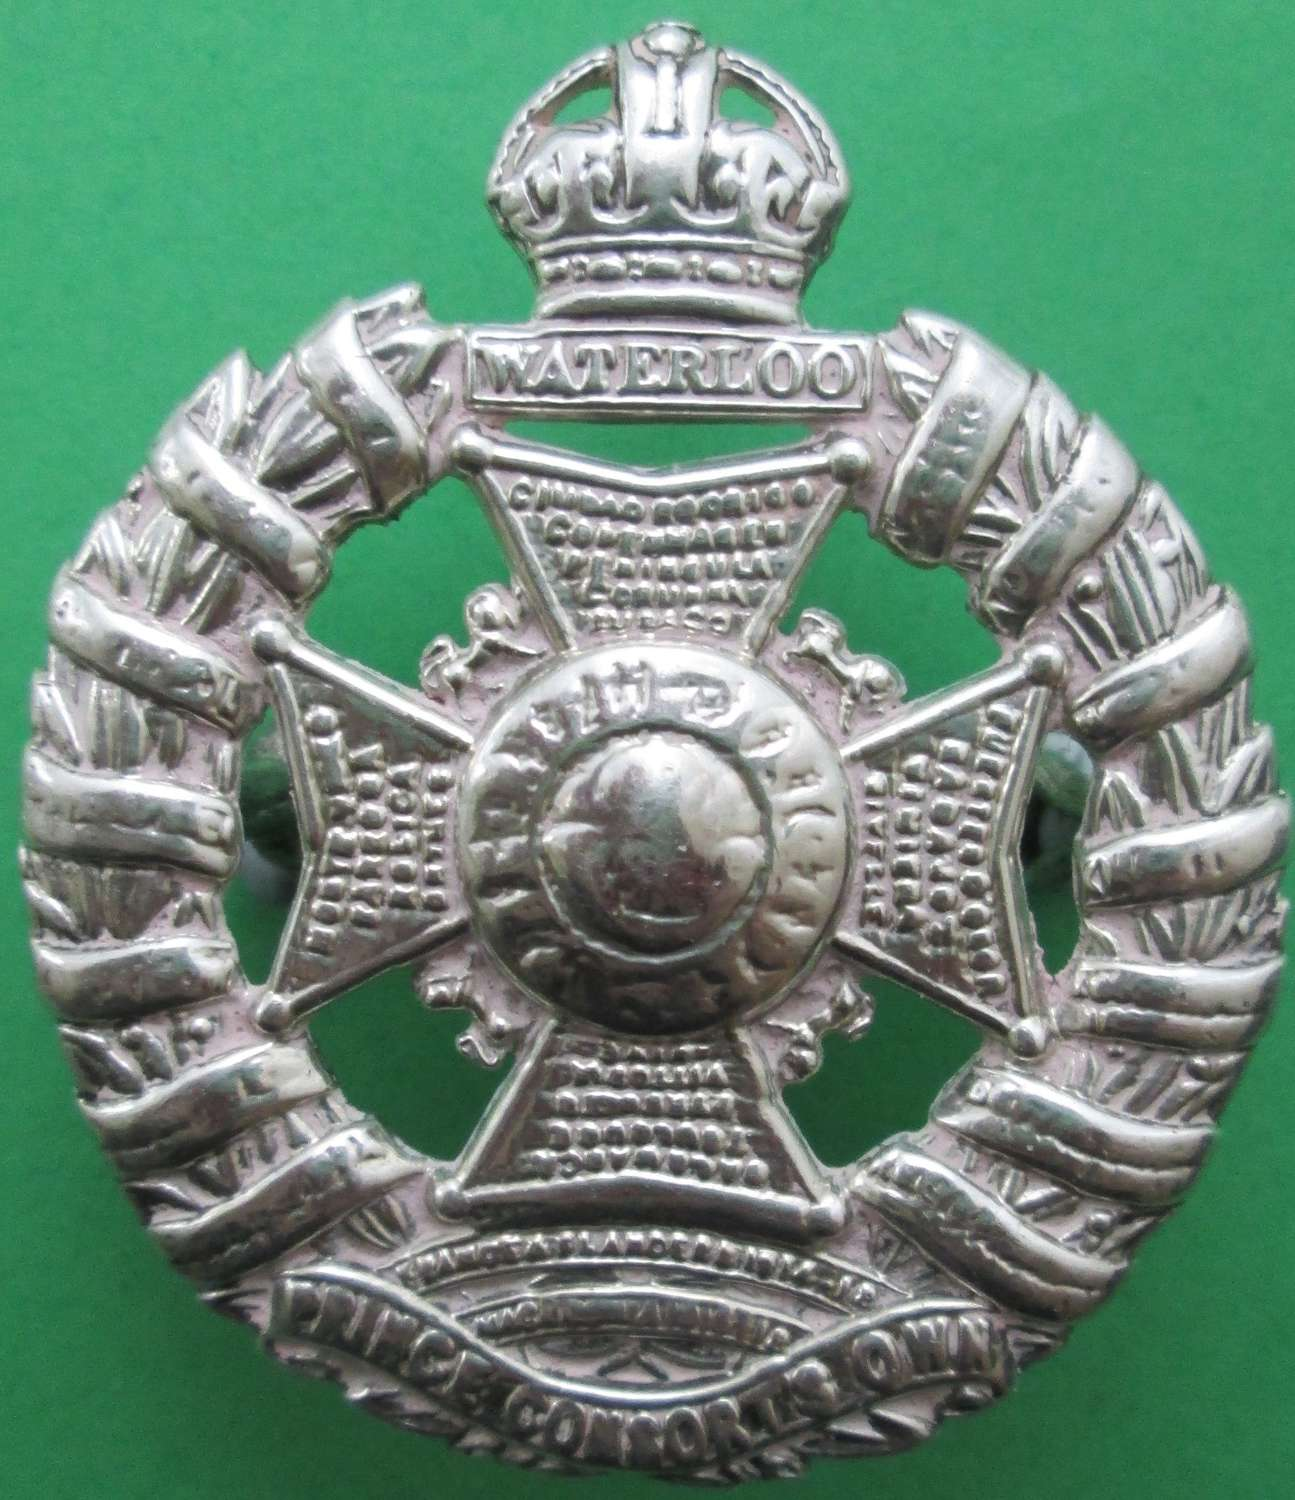 A RIFLE BRIGADE STERLING SILVER OFFICER'S BADGE